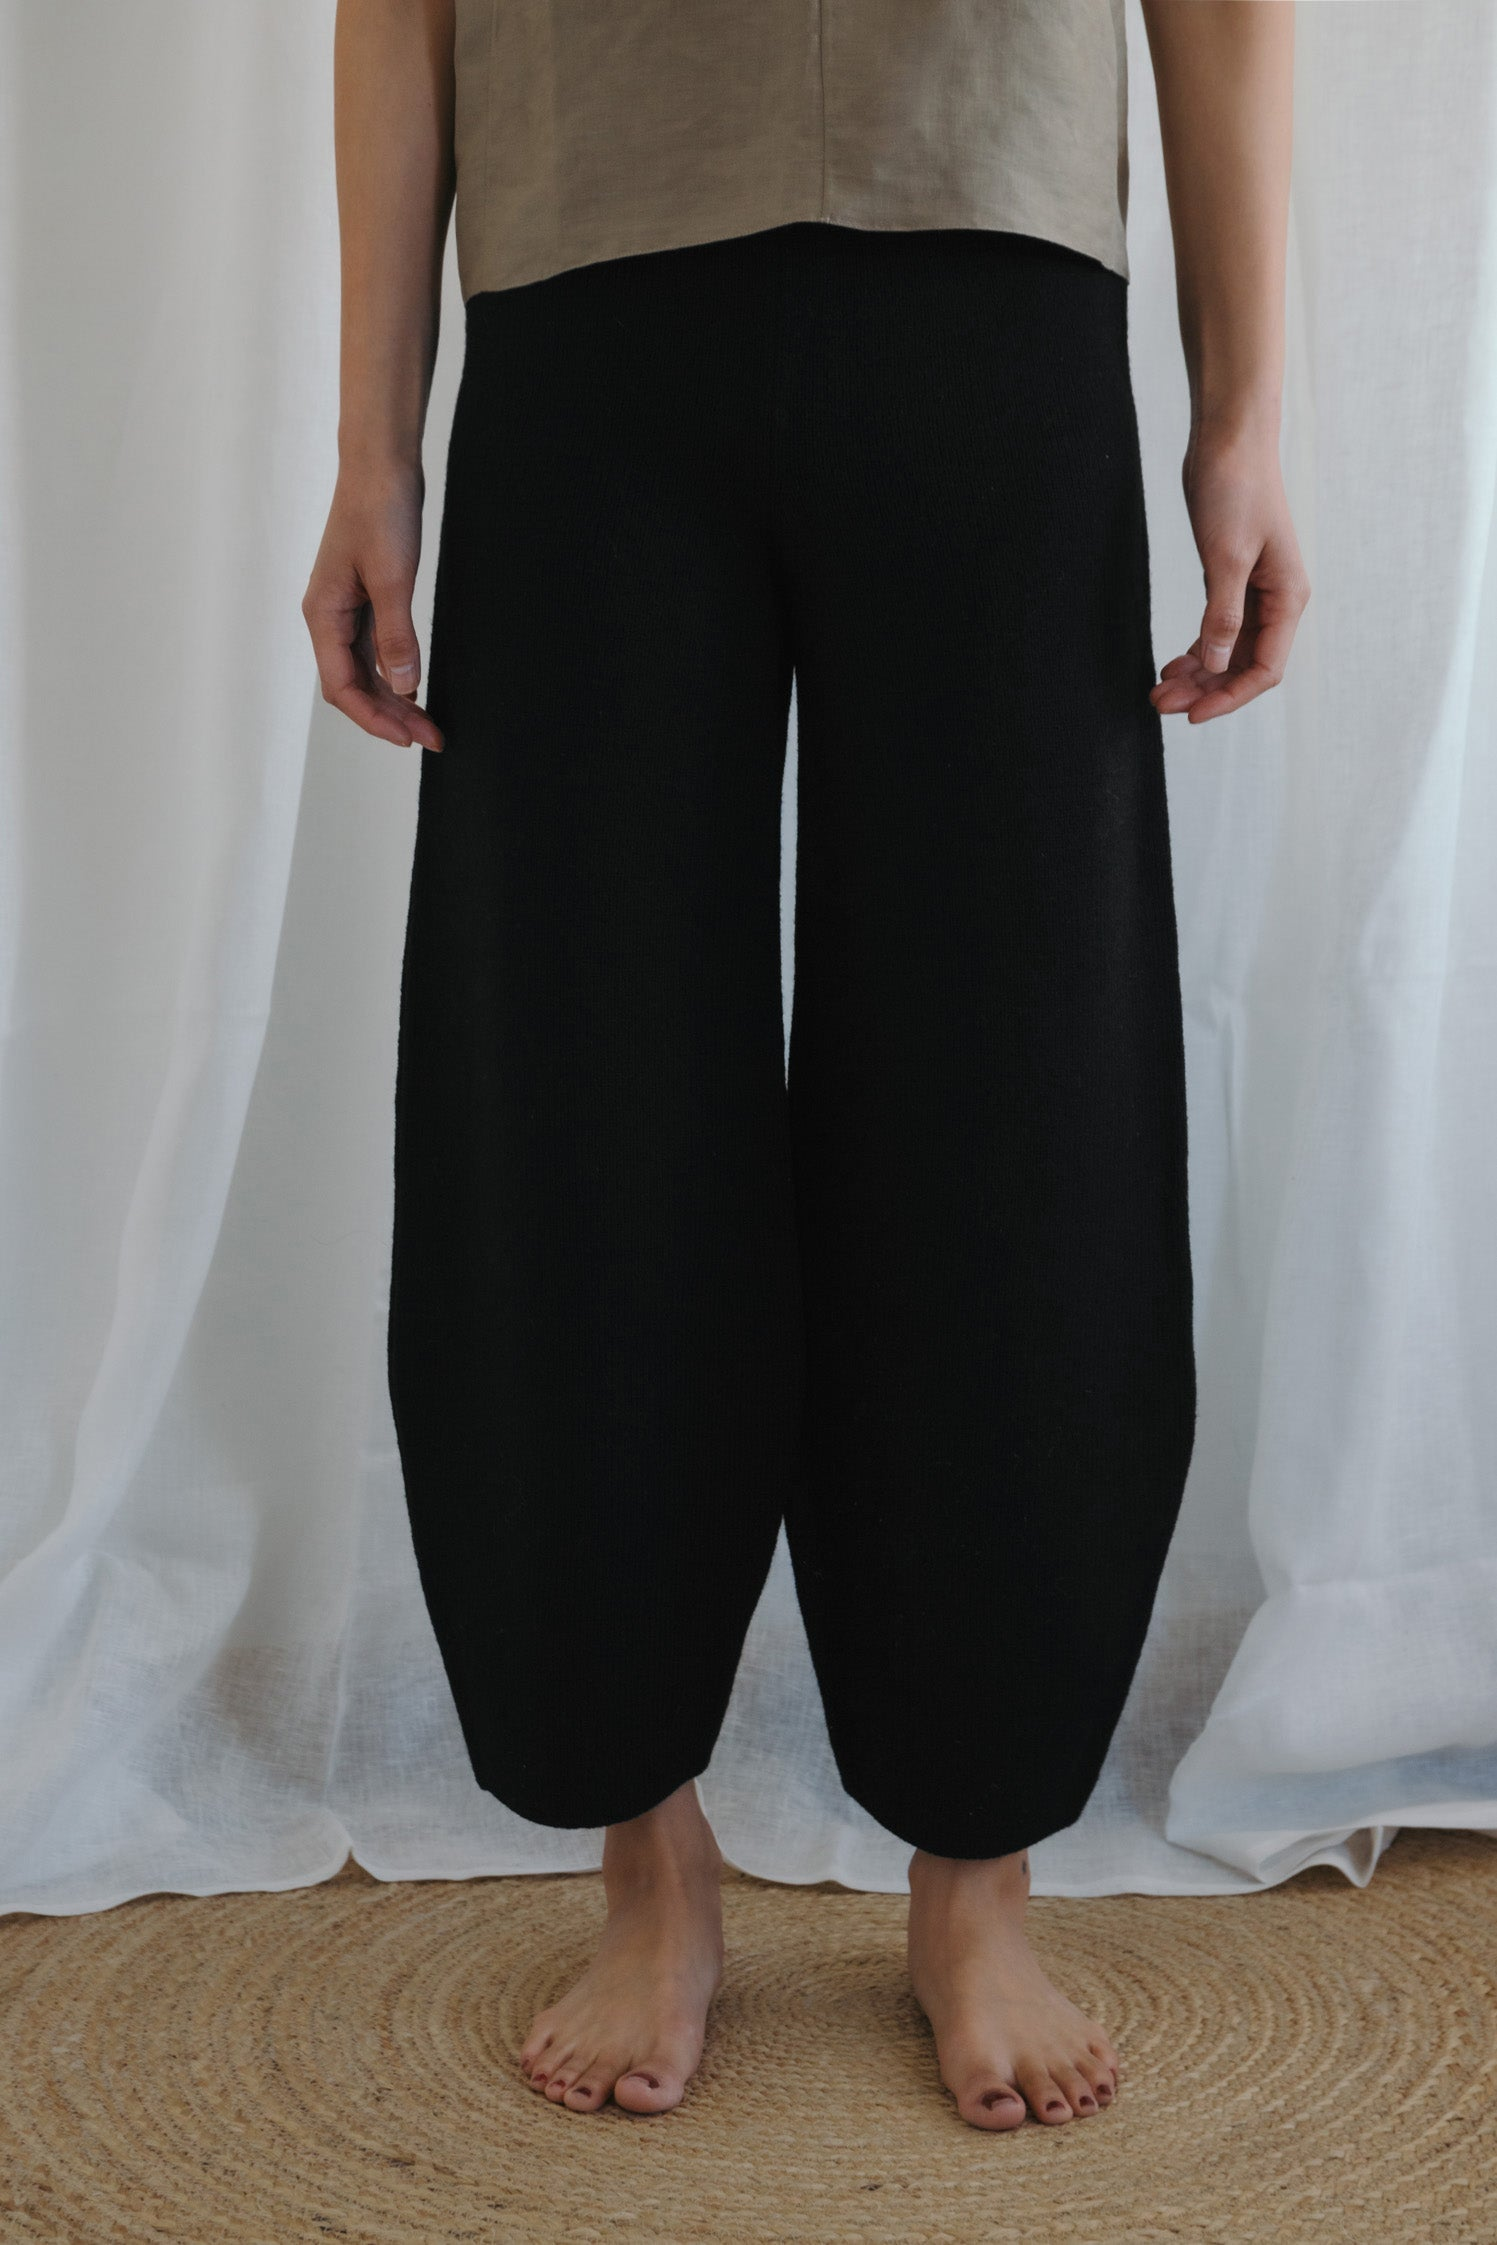 Naifu Ink trousers